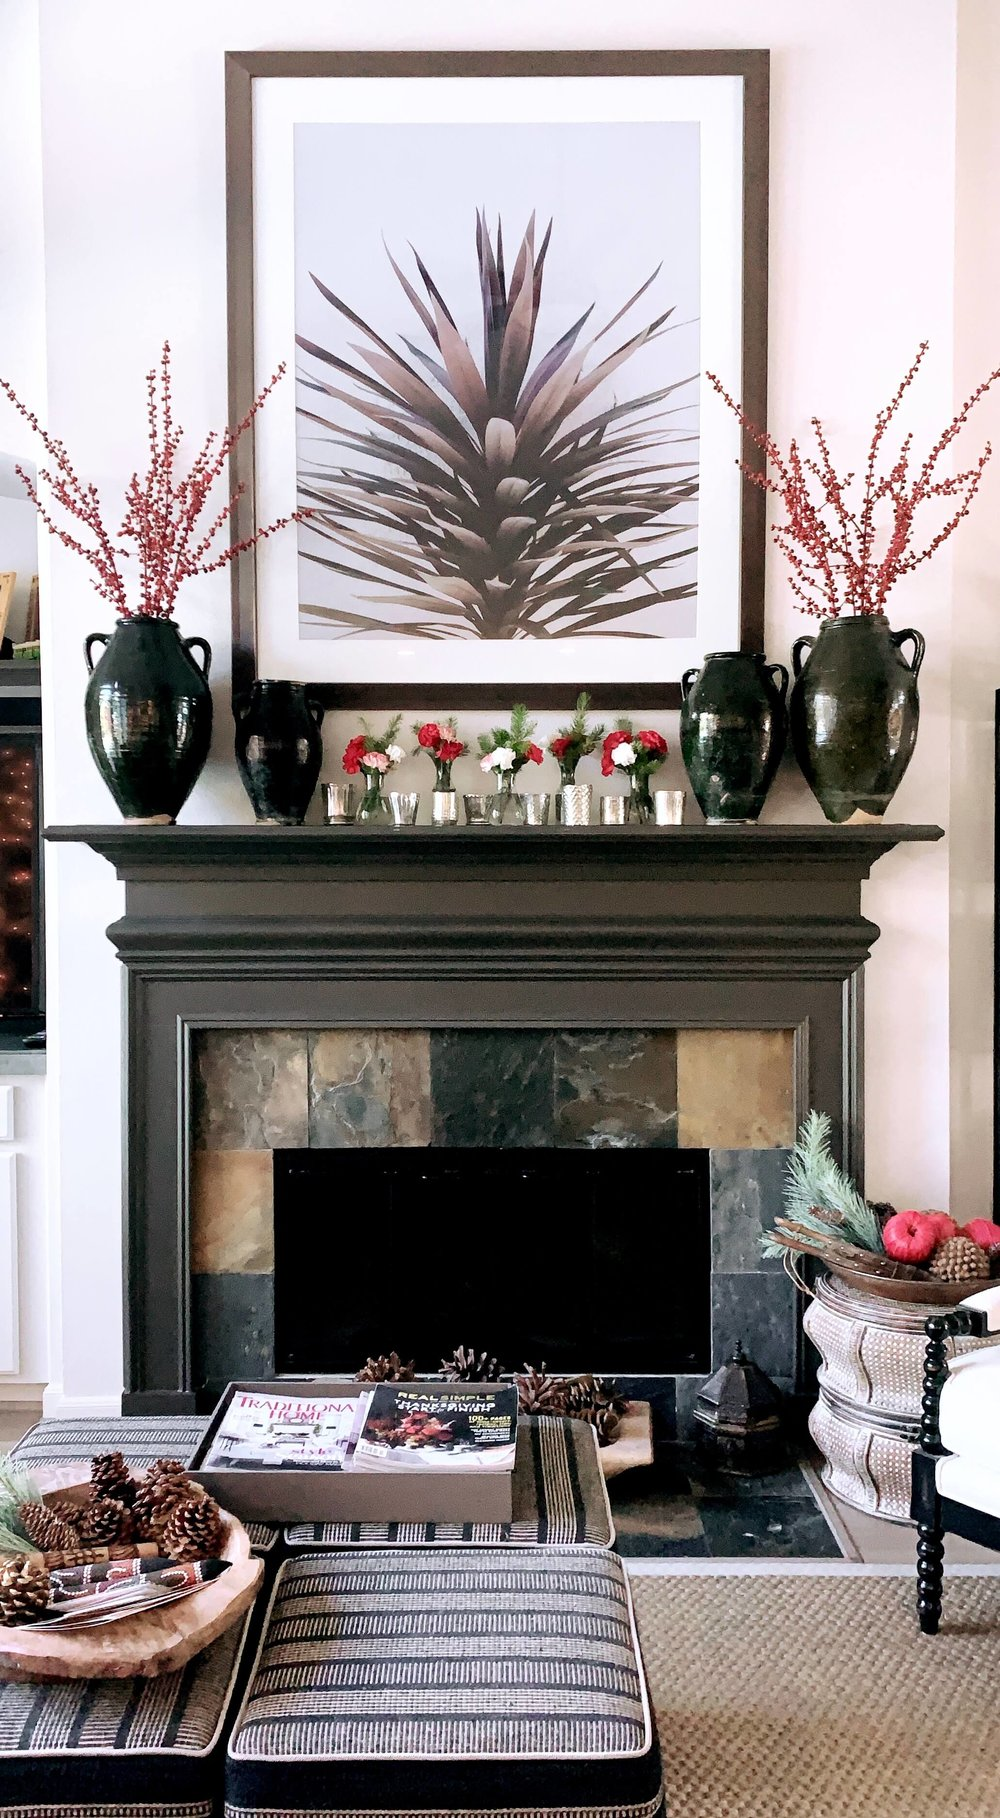 Christmas home tour - fireplace mantel decor, Designer: Carla Aston | #fireplacemantel #mantle #holidayhometour #christmashometour #christmasdecor